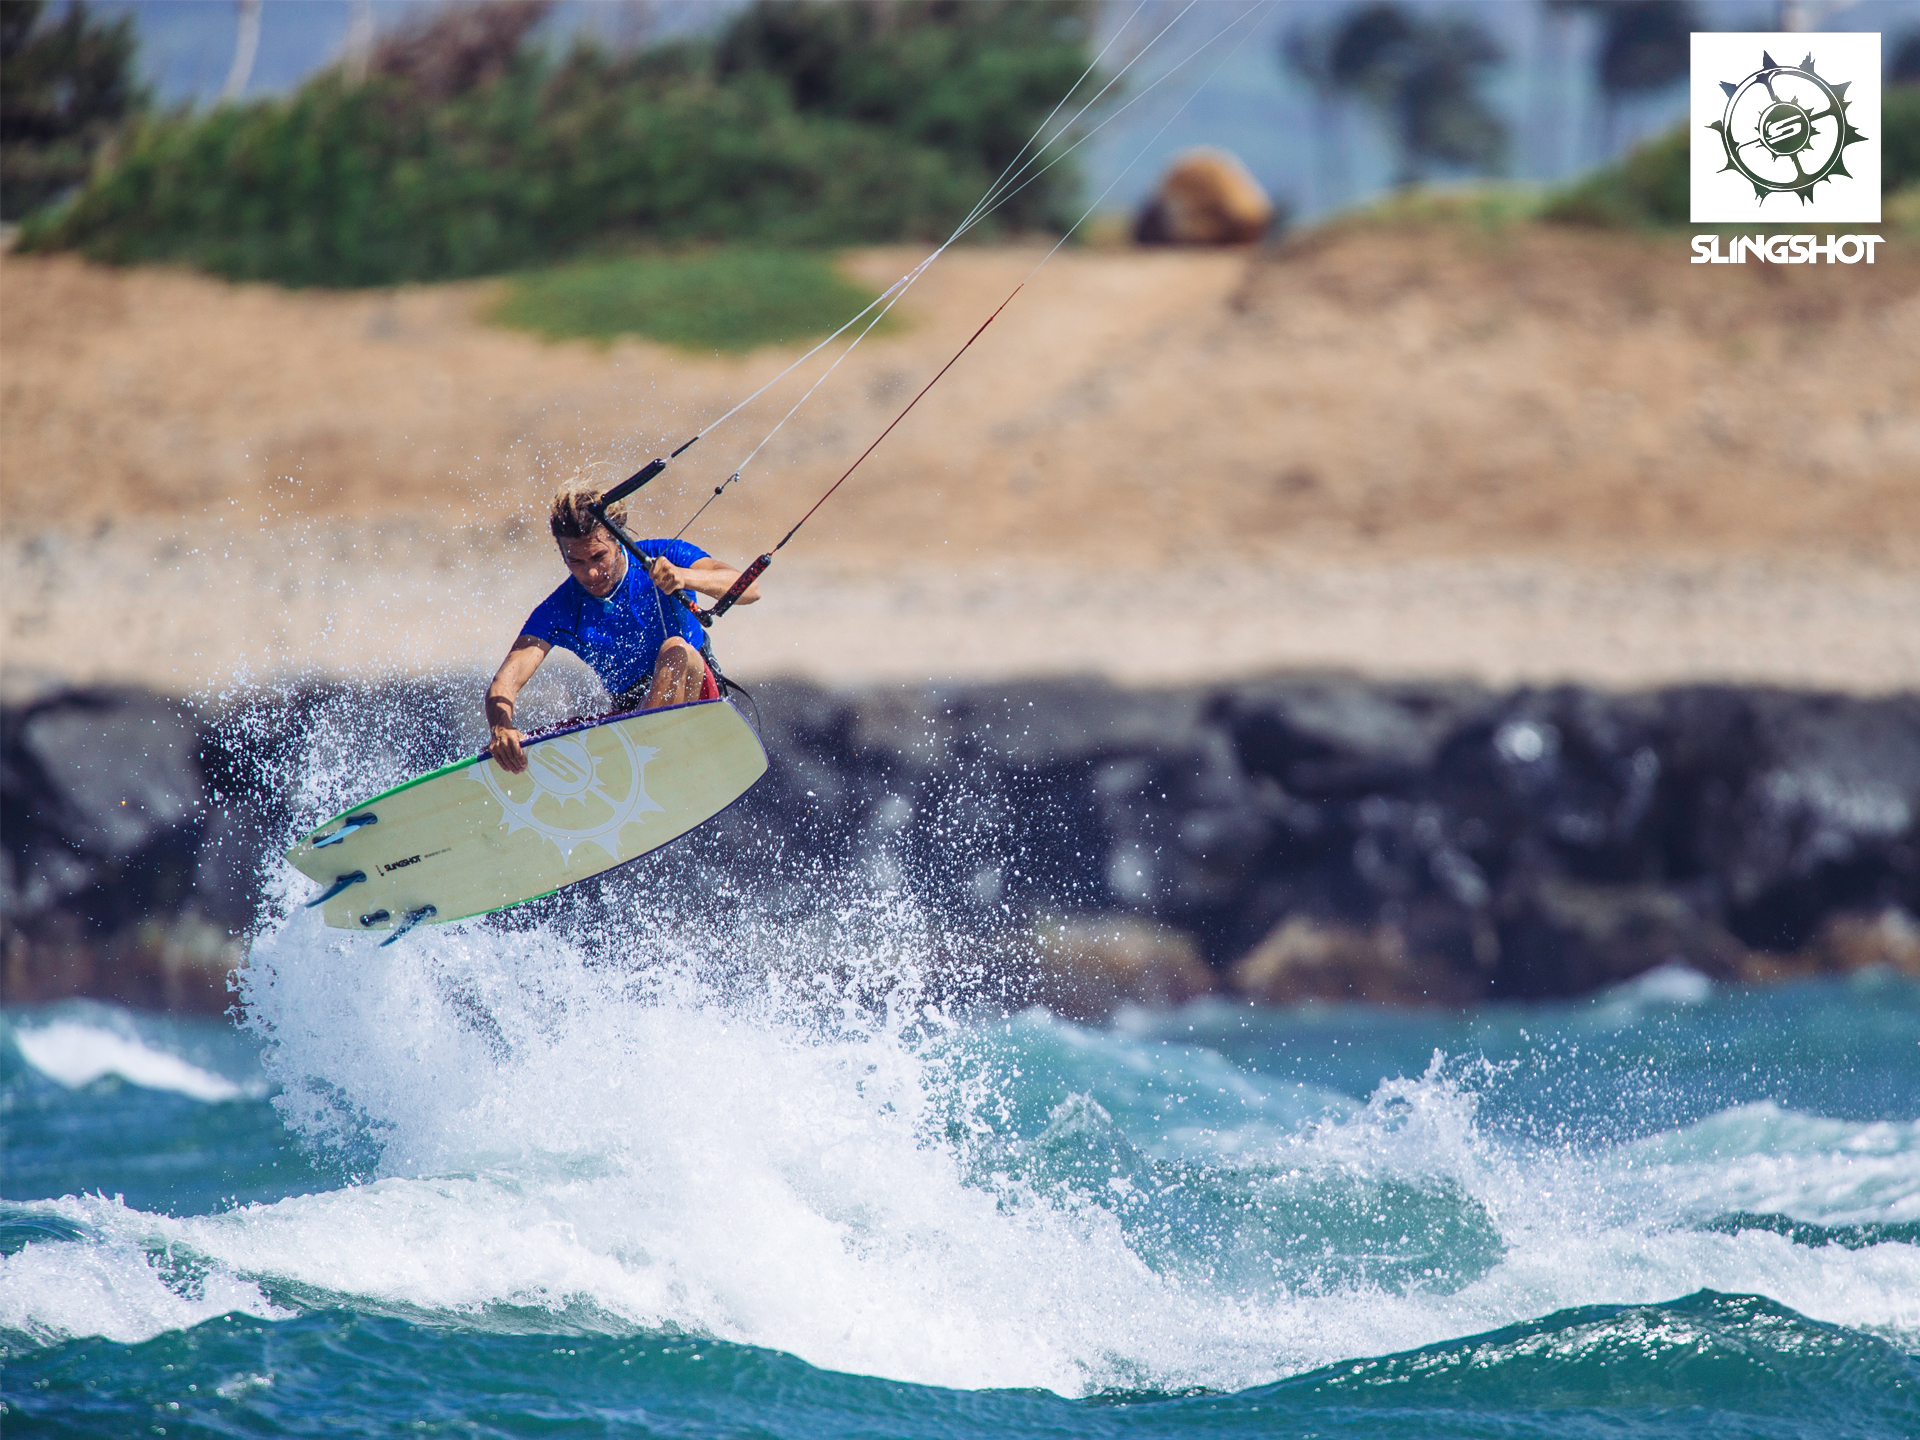 kitesurf wallpaper image - Patrick Rebstock on the 2015 Slingshot Angry Swallow kiteboard - in resolution: Standard 4:3 1920 X 1440